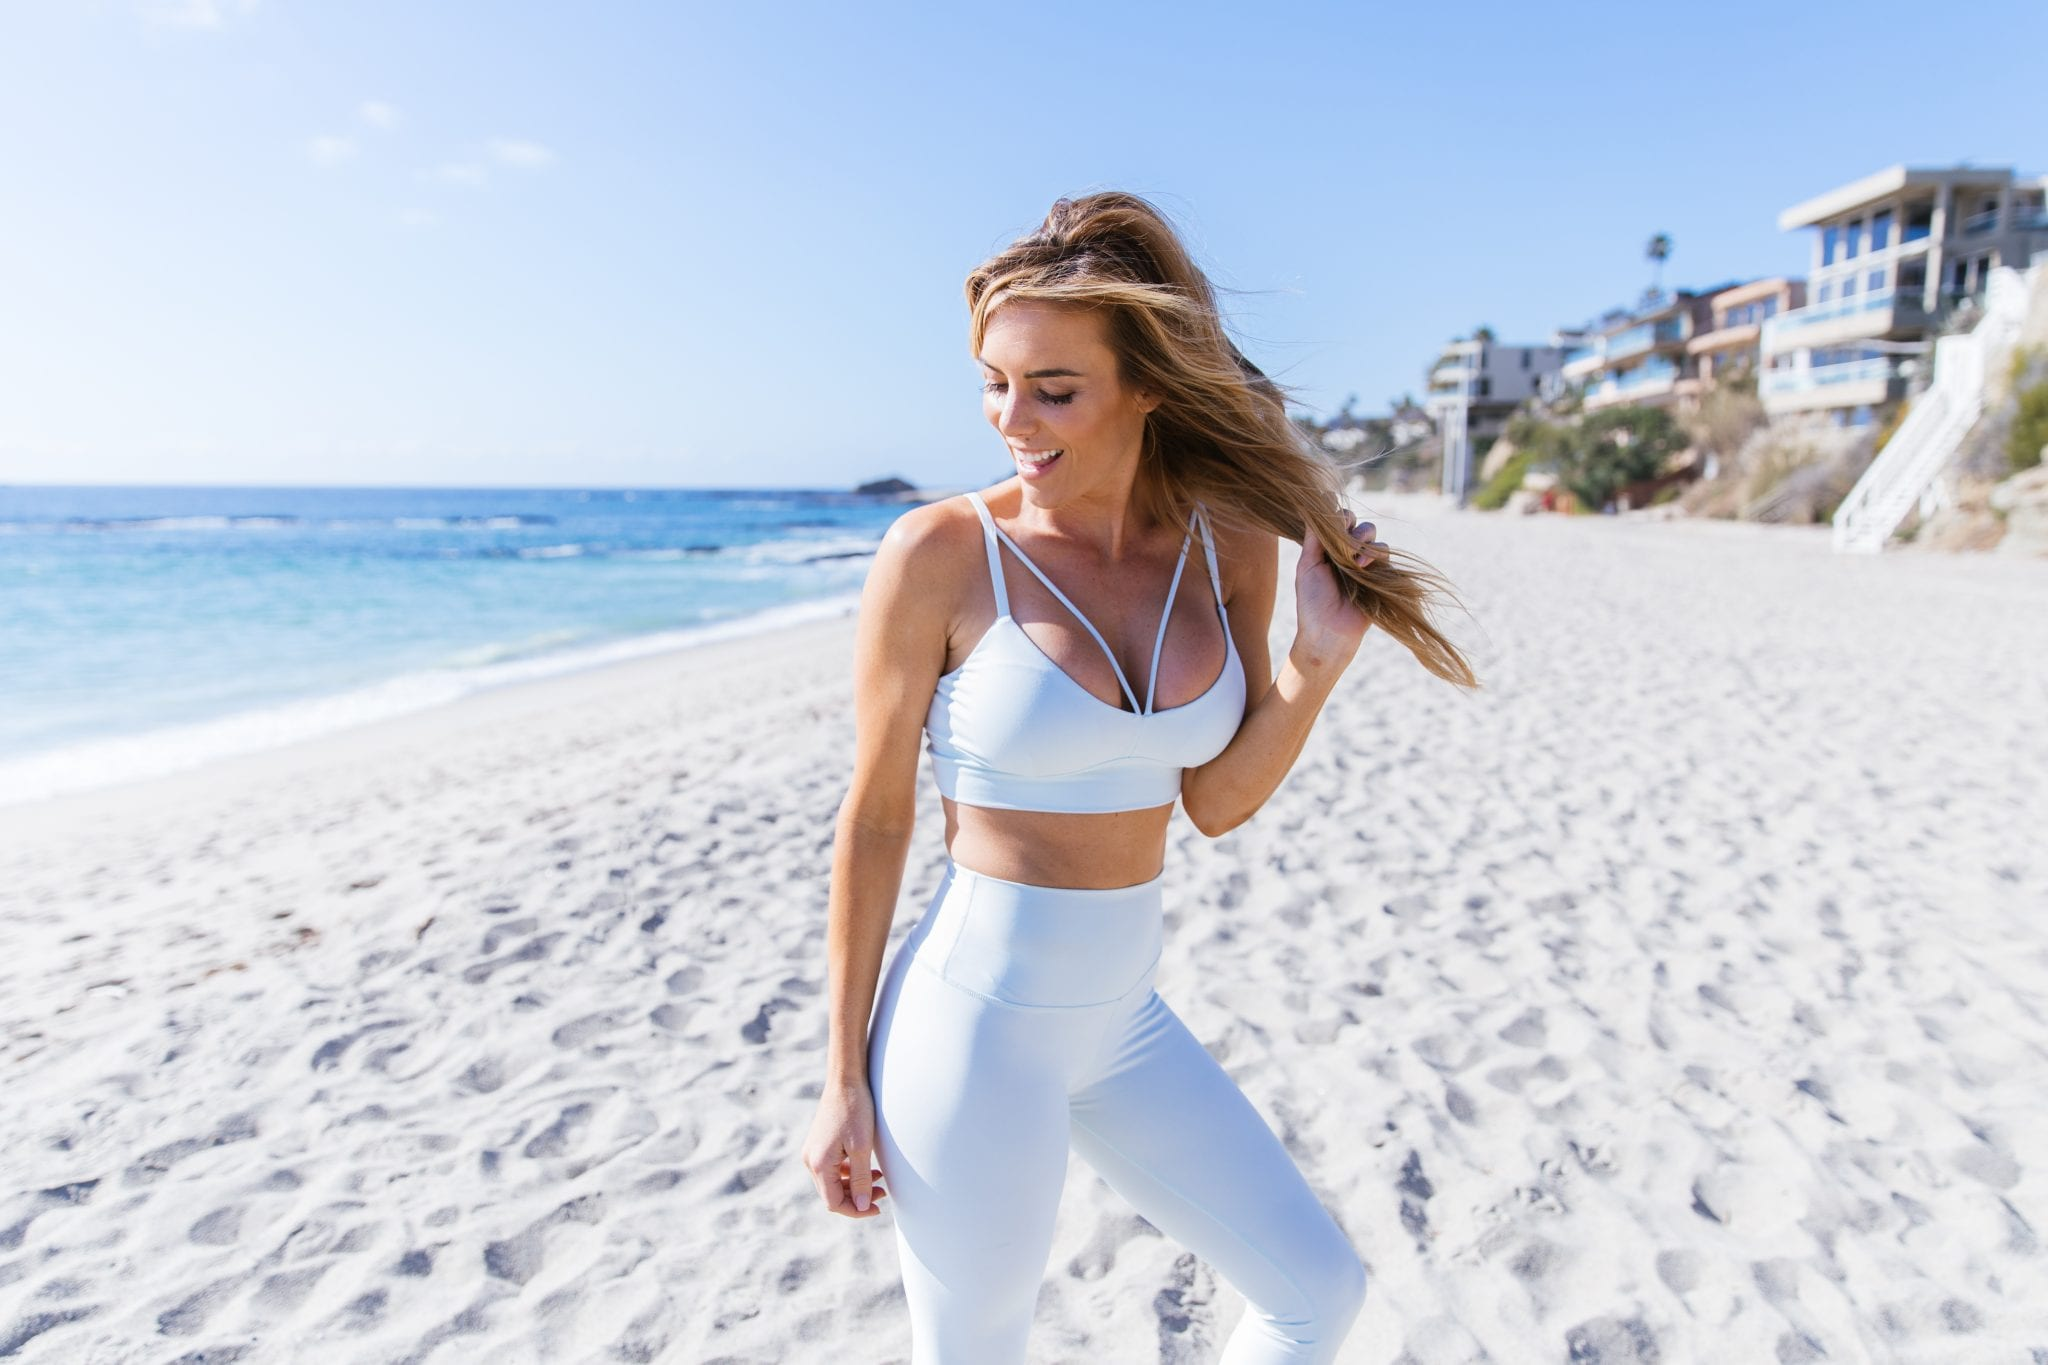 If you struggle with motivation, you need these tips for getting your fitness habit in check.